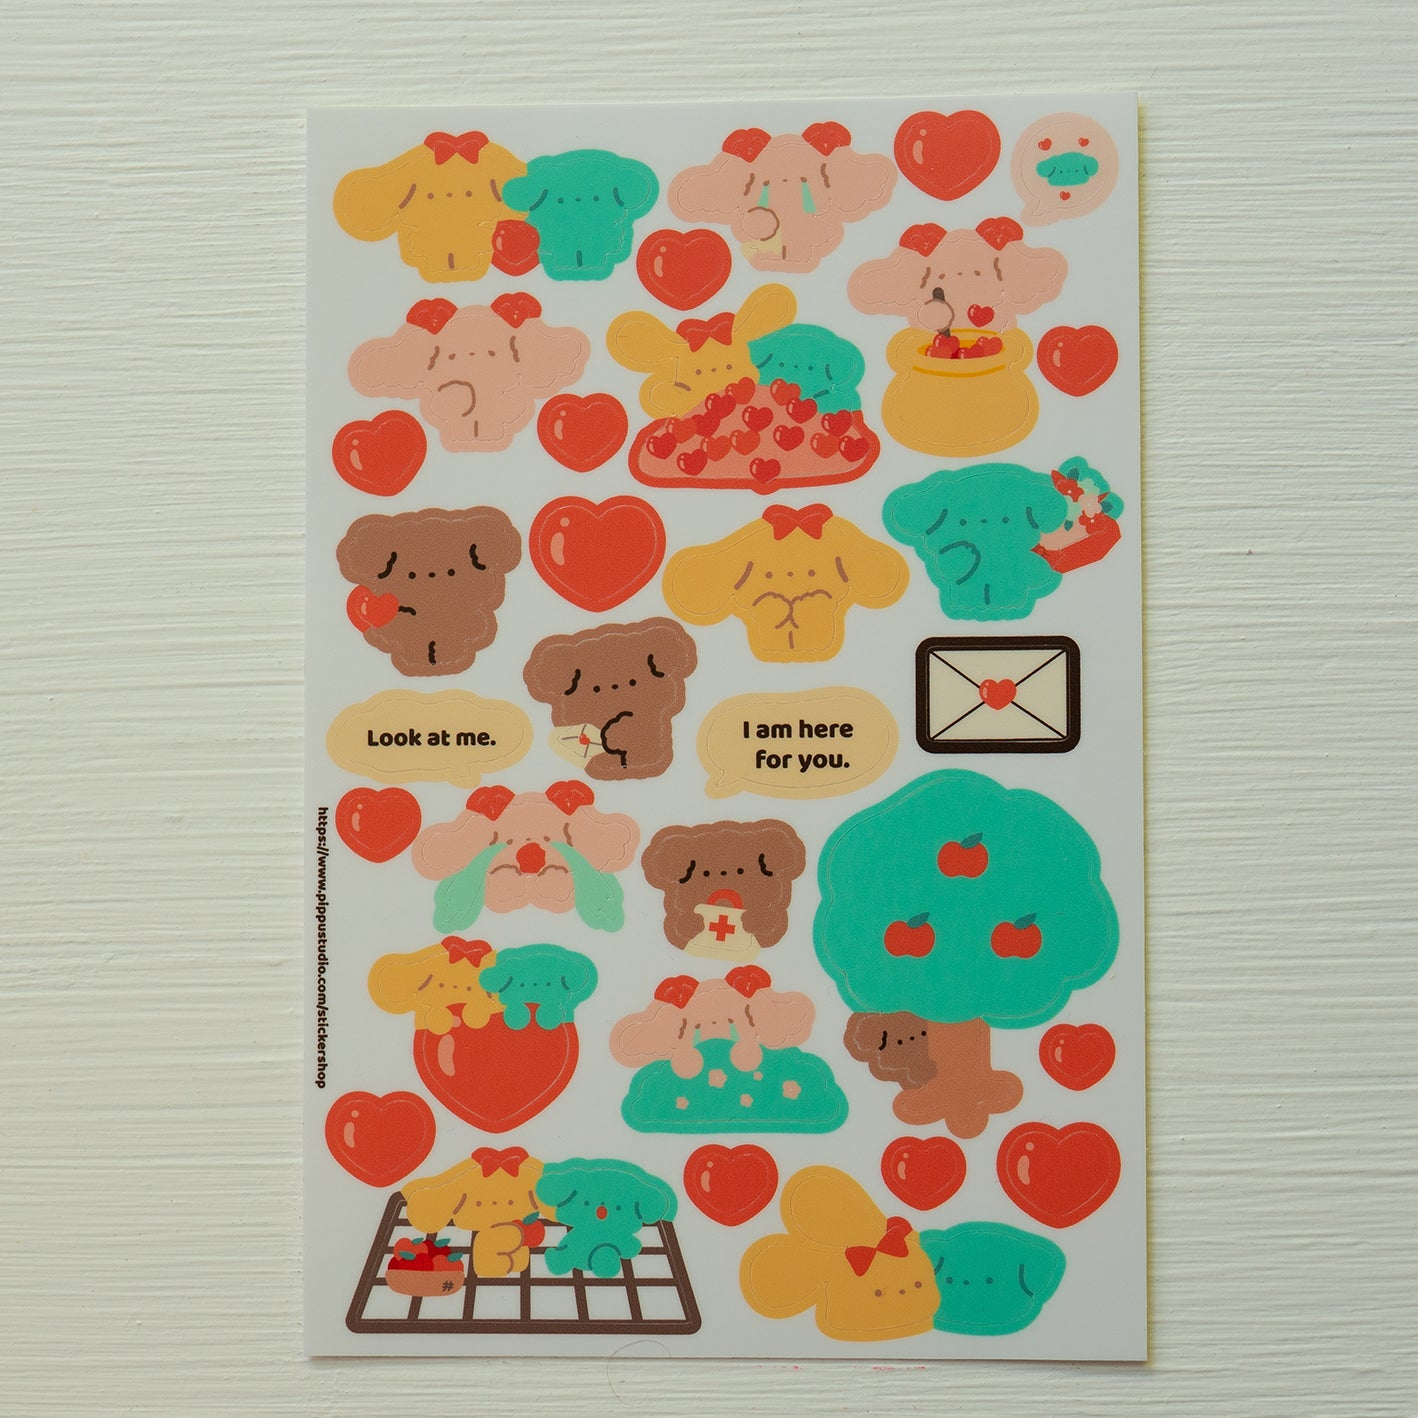 A77-Puppy love sticker sheet